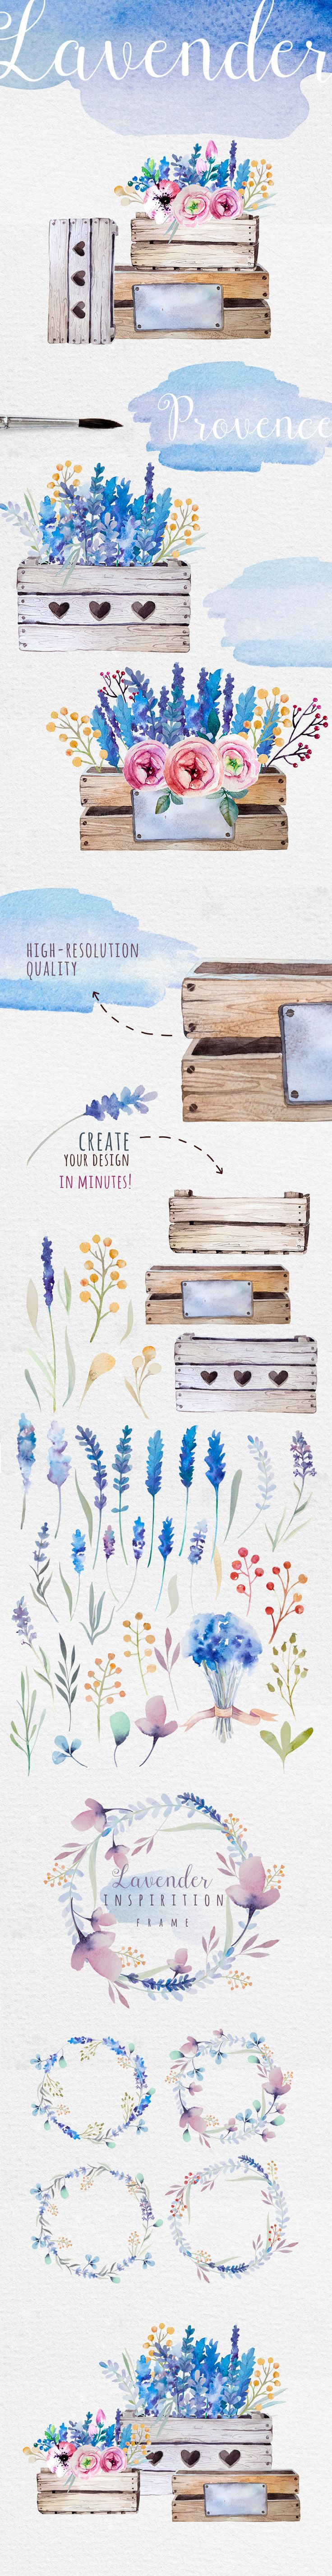 Lavender watercolor DIY by Peace ART on Creative Market #watercolor #design #lavender